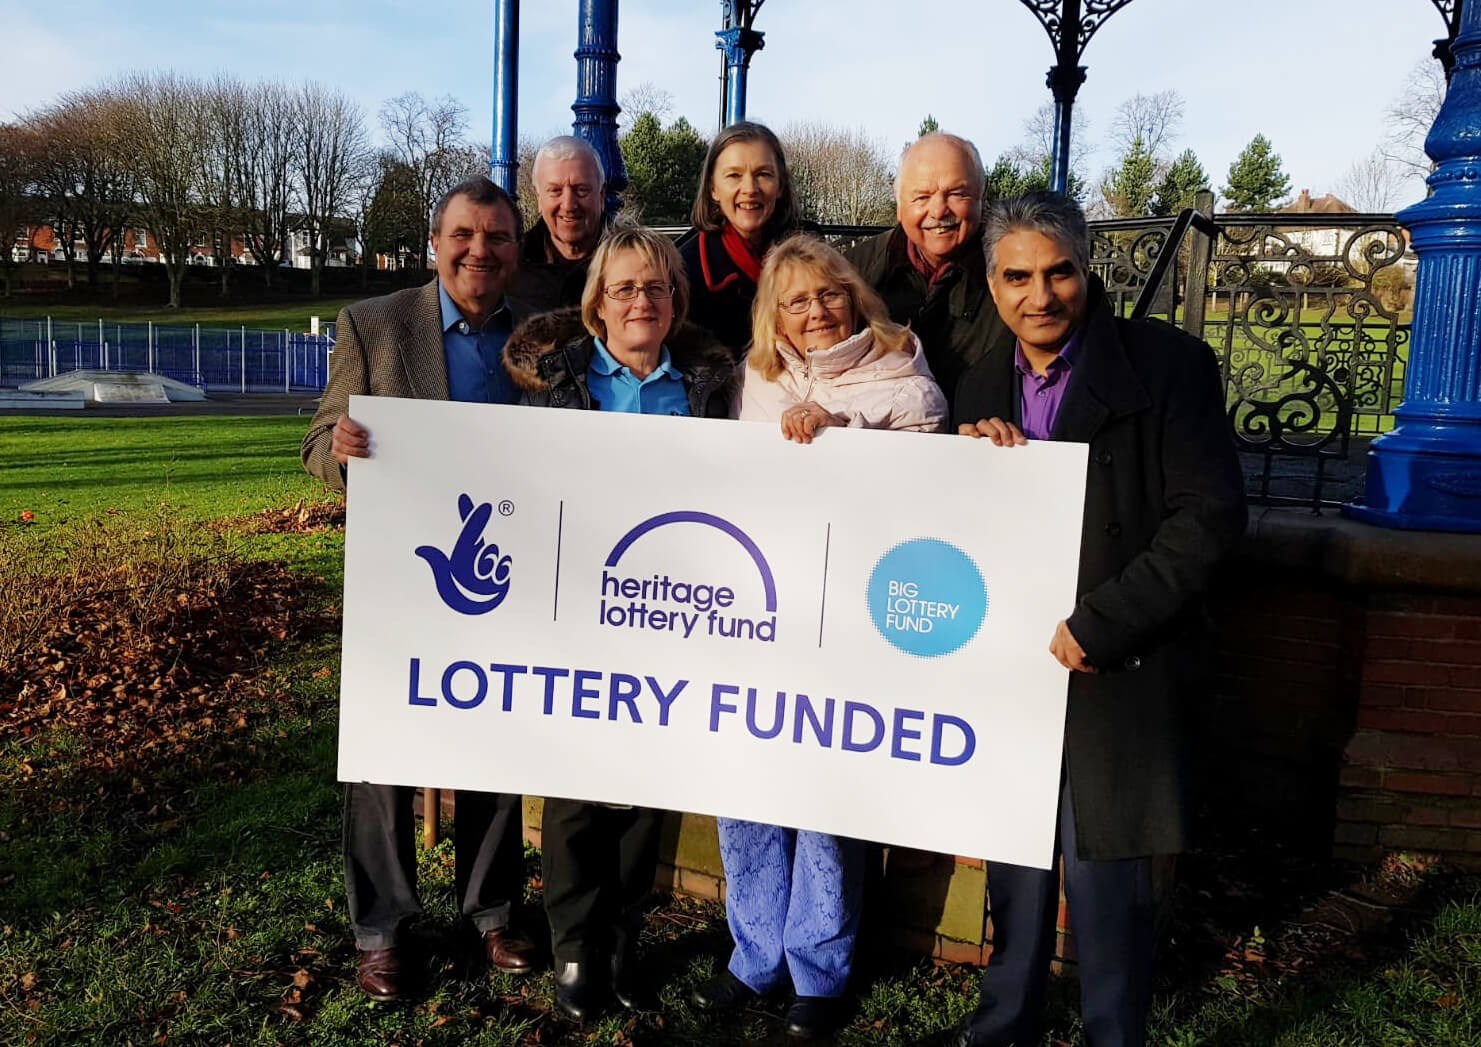 Stevens Park in line for National Lottery money